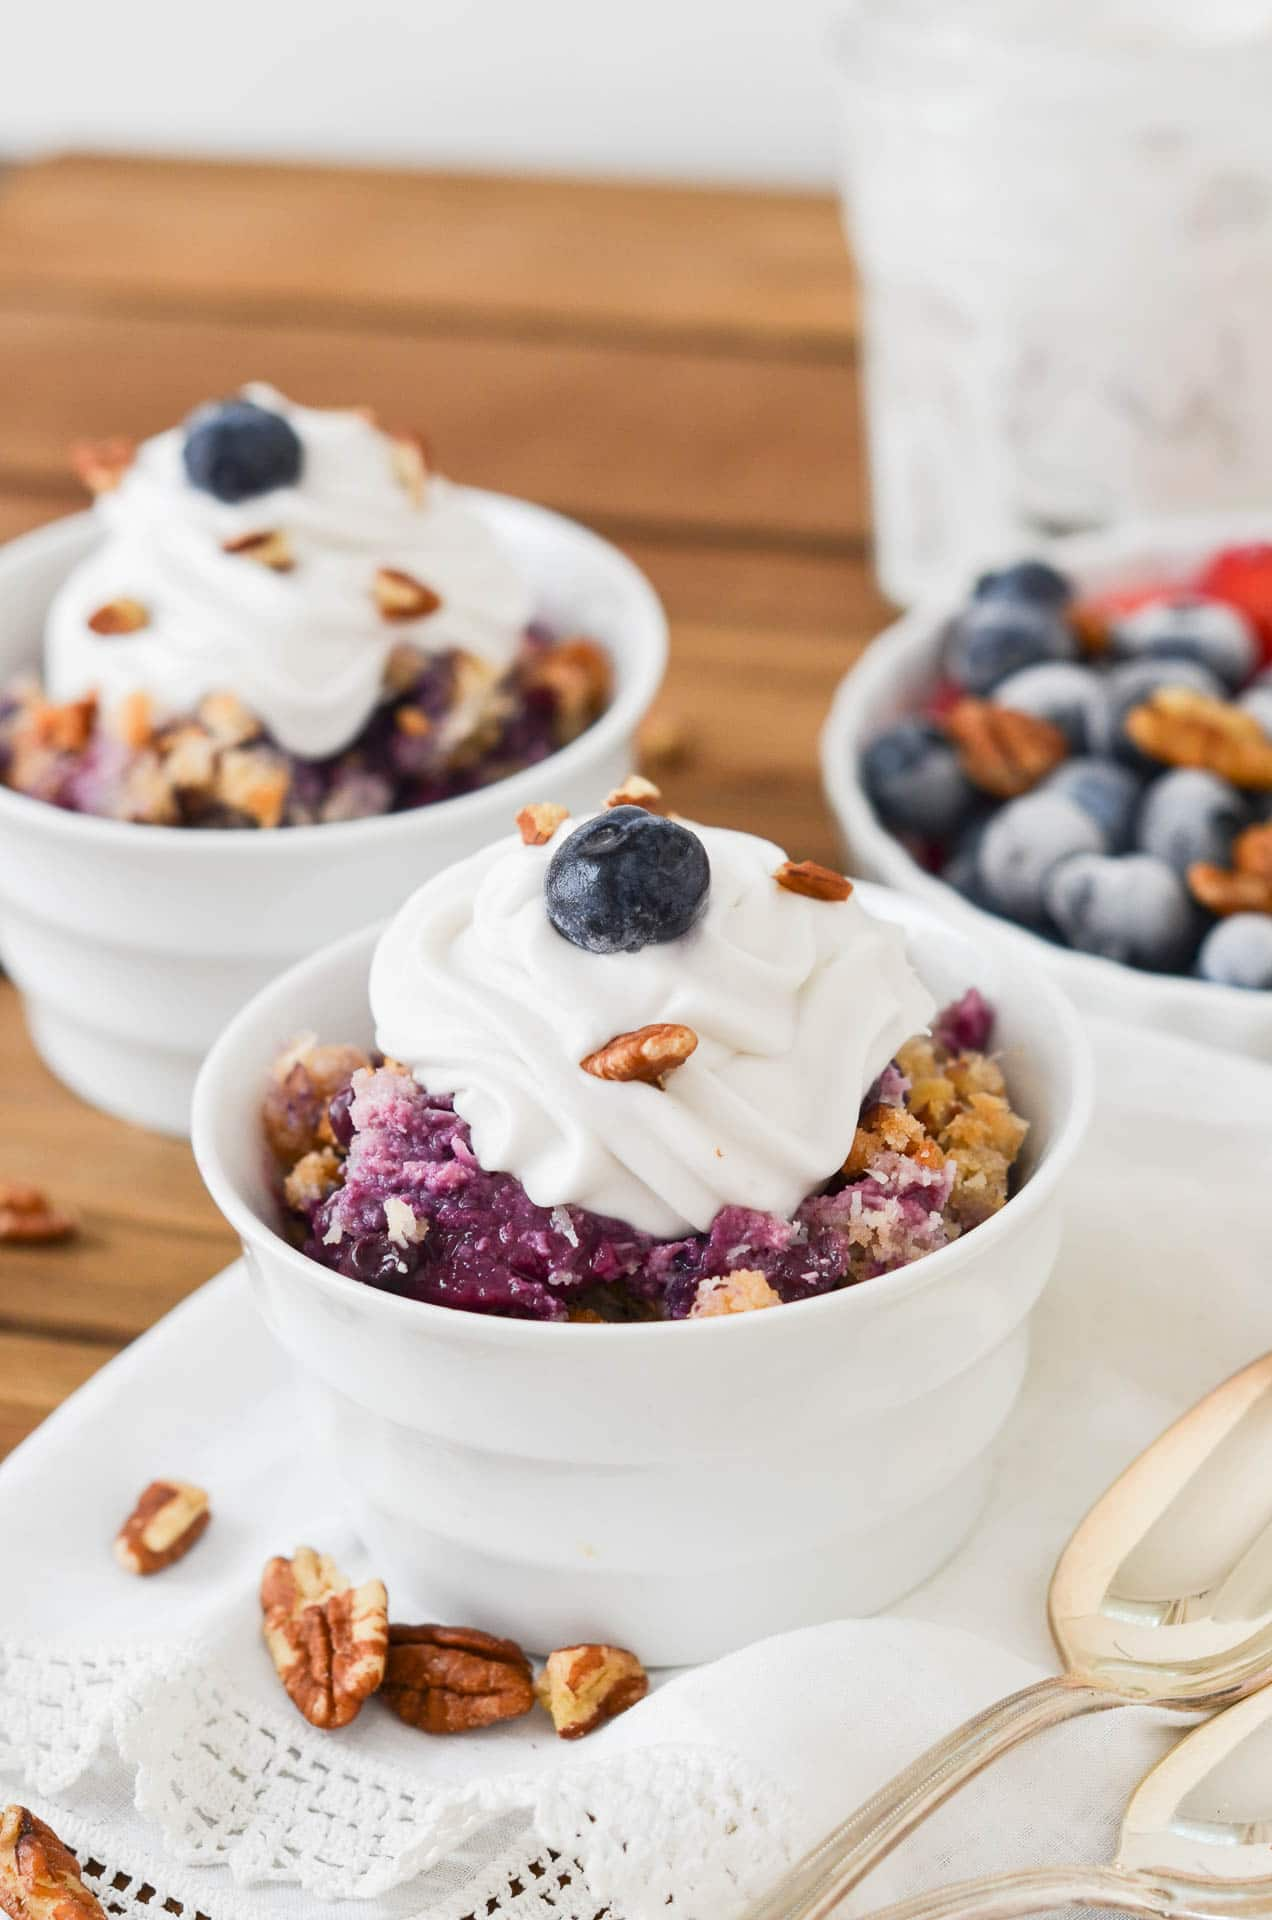 How To Make An Amazing Peach Blueberry Crumble 24